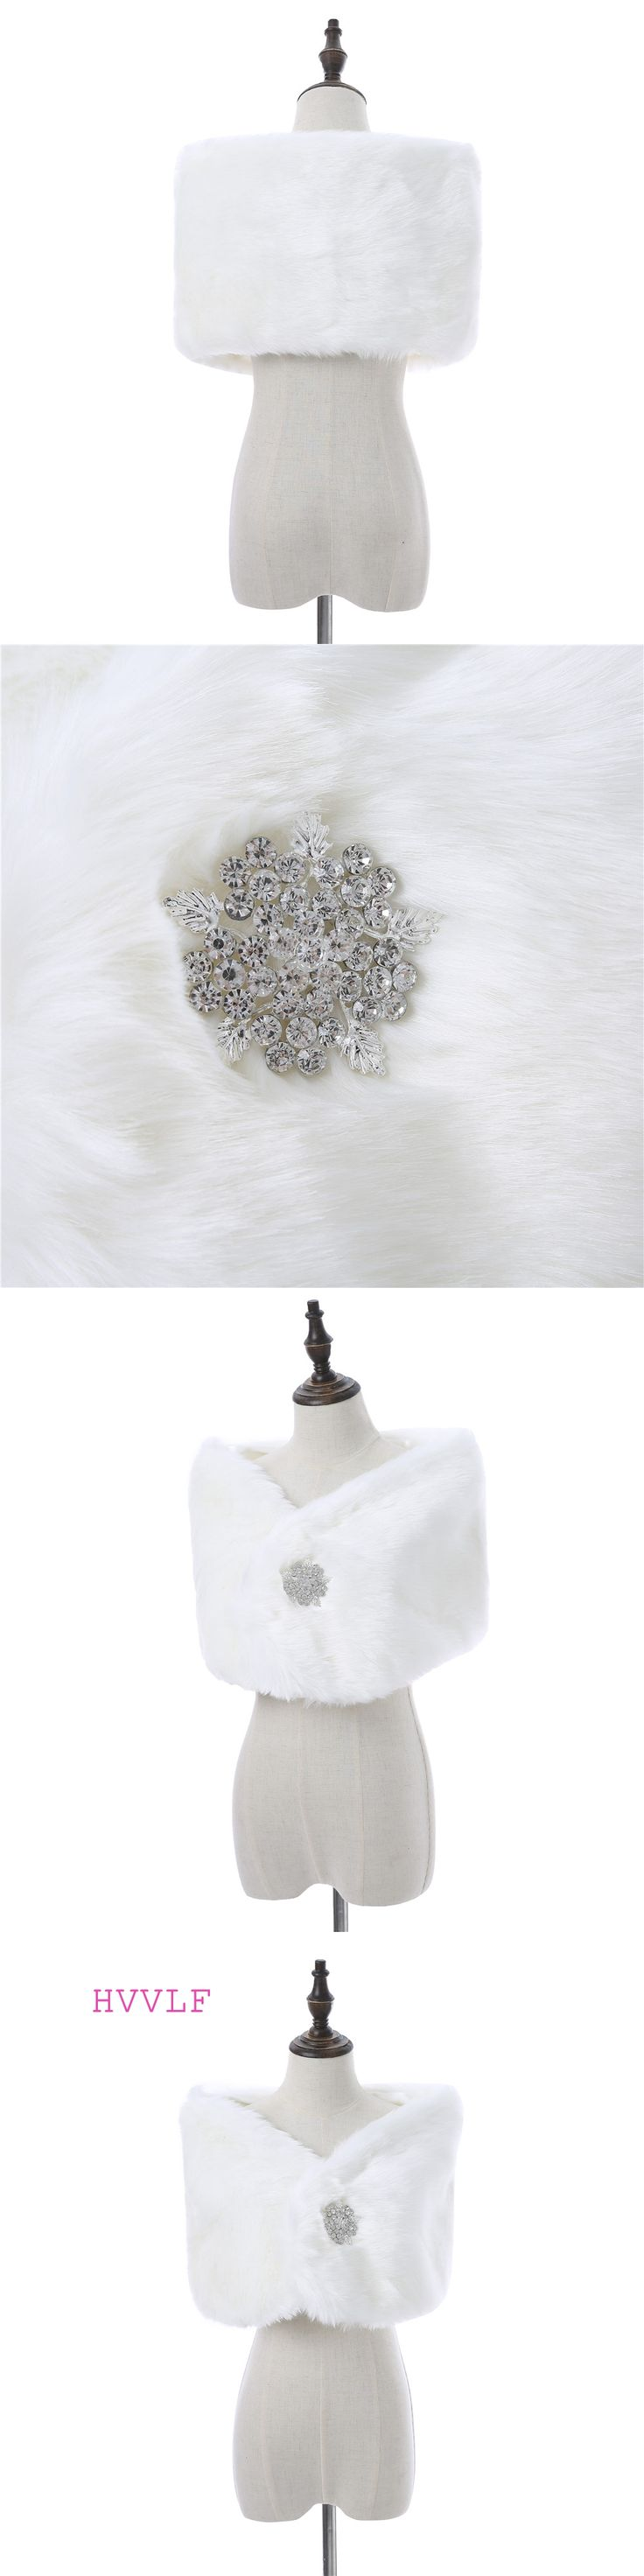 New Arrival Faux Fur Wedding Jackets Without Buttons Winter Bridal Wedding Shawl With Sleeves Worm Jackets Bolero